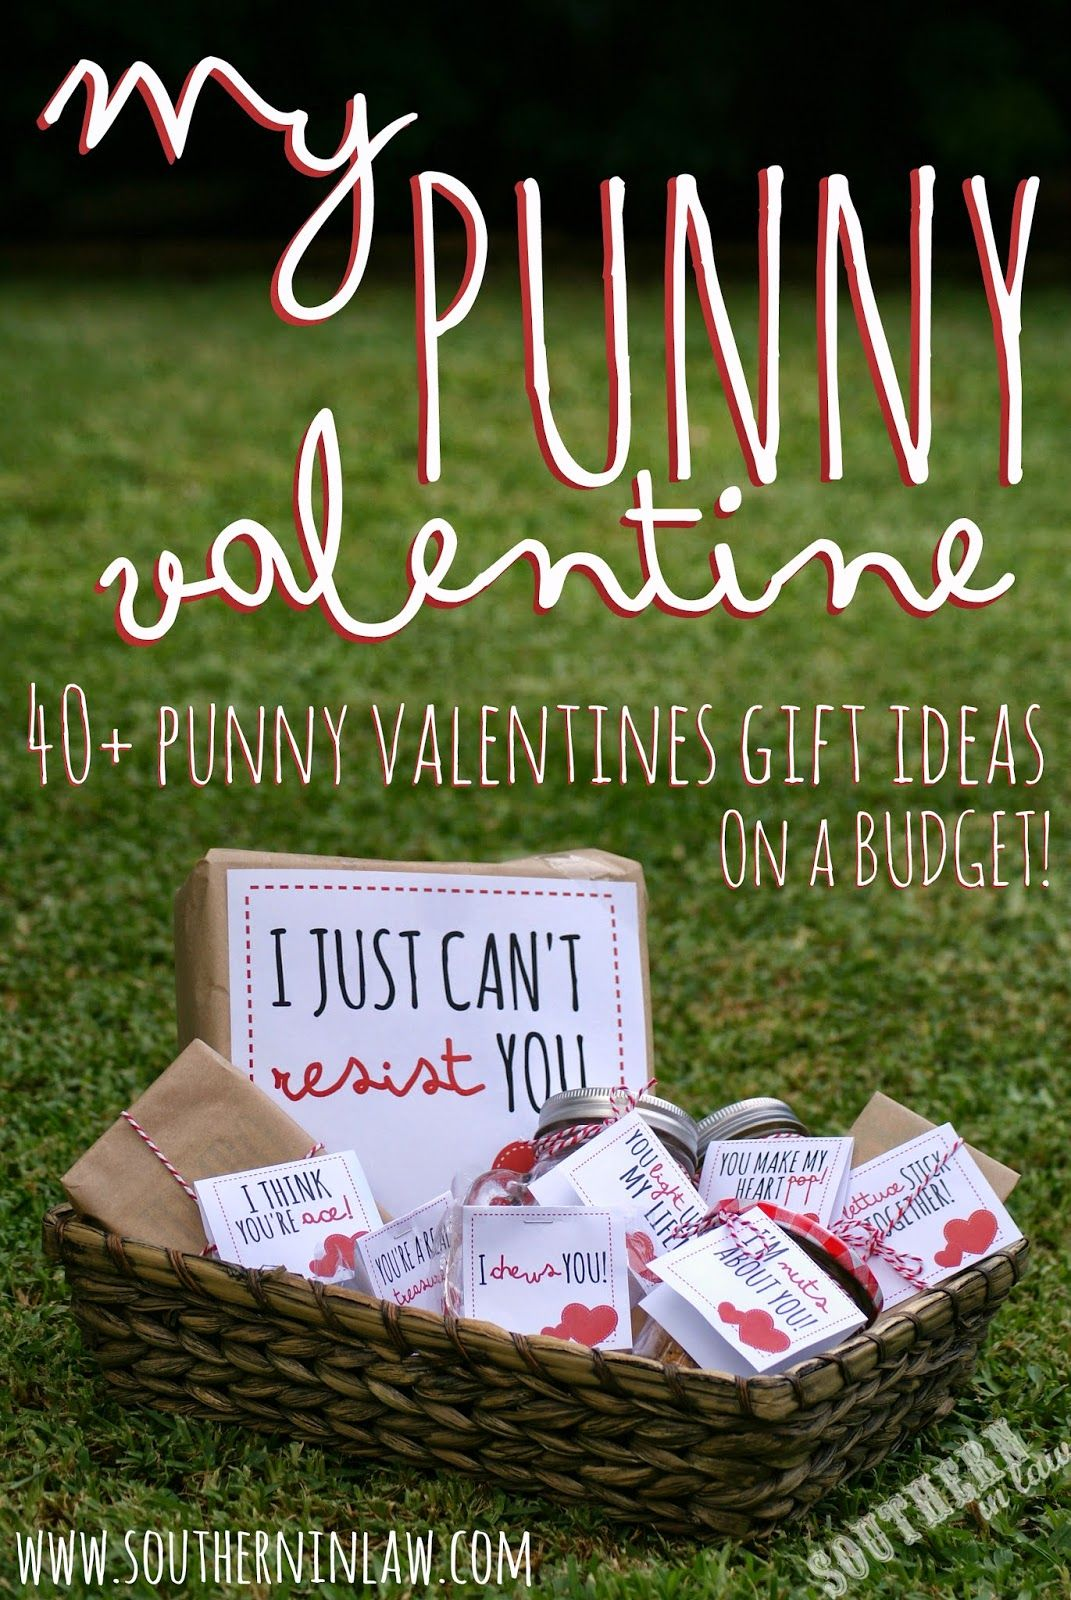 My punny valentine 40 punny valentines gift ideas with free my punny valentine 40 punny valentines gift ideas with free printable gift tags negle Image collections